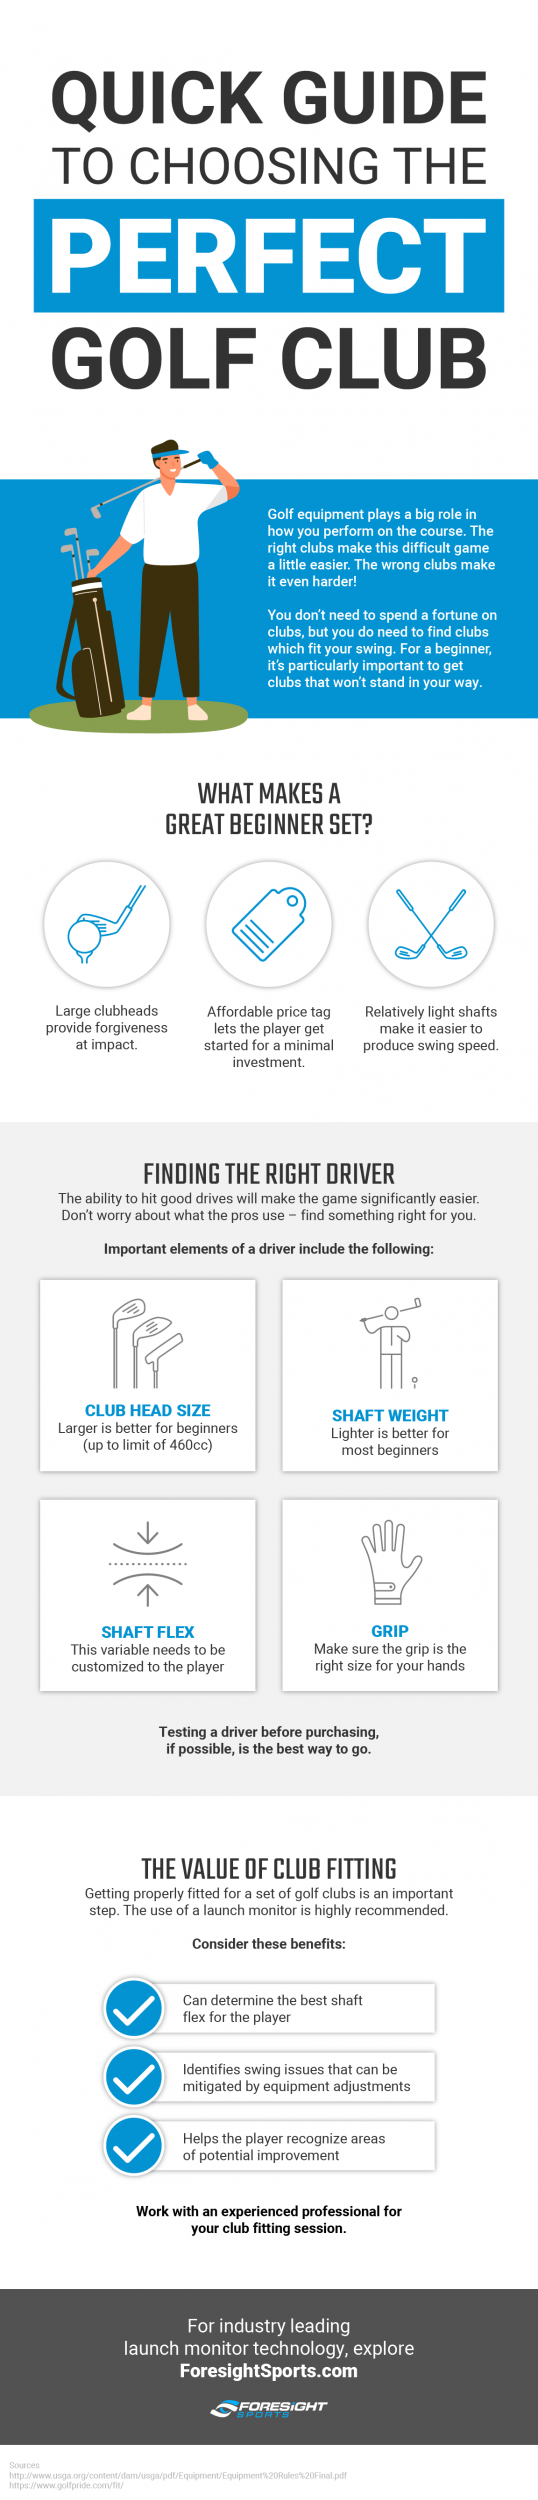 guide to choosing the perfect golf club infographic